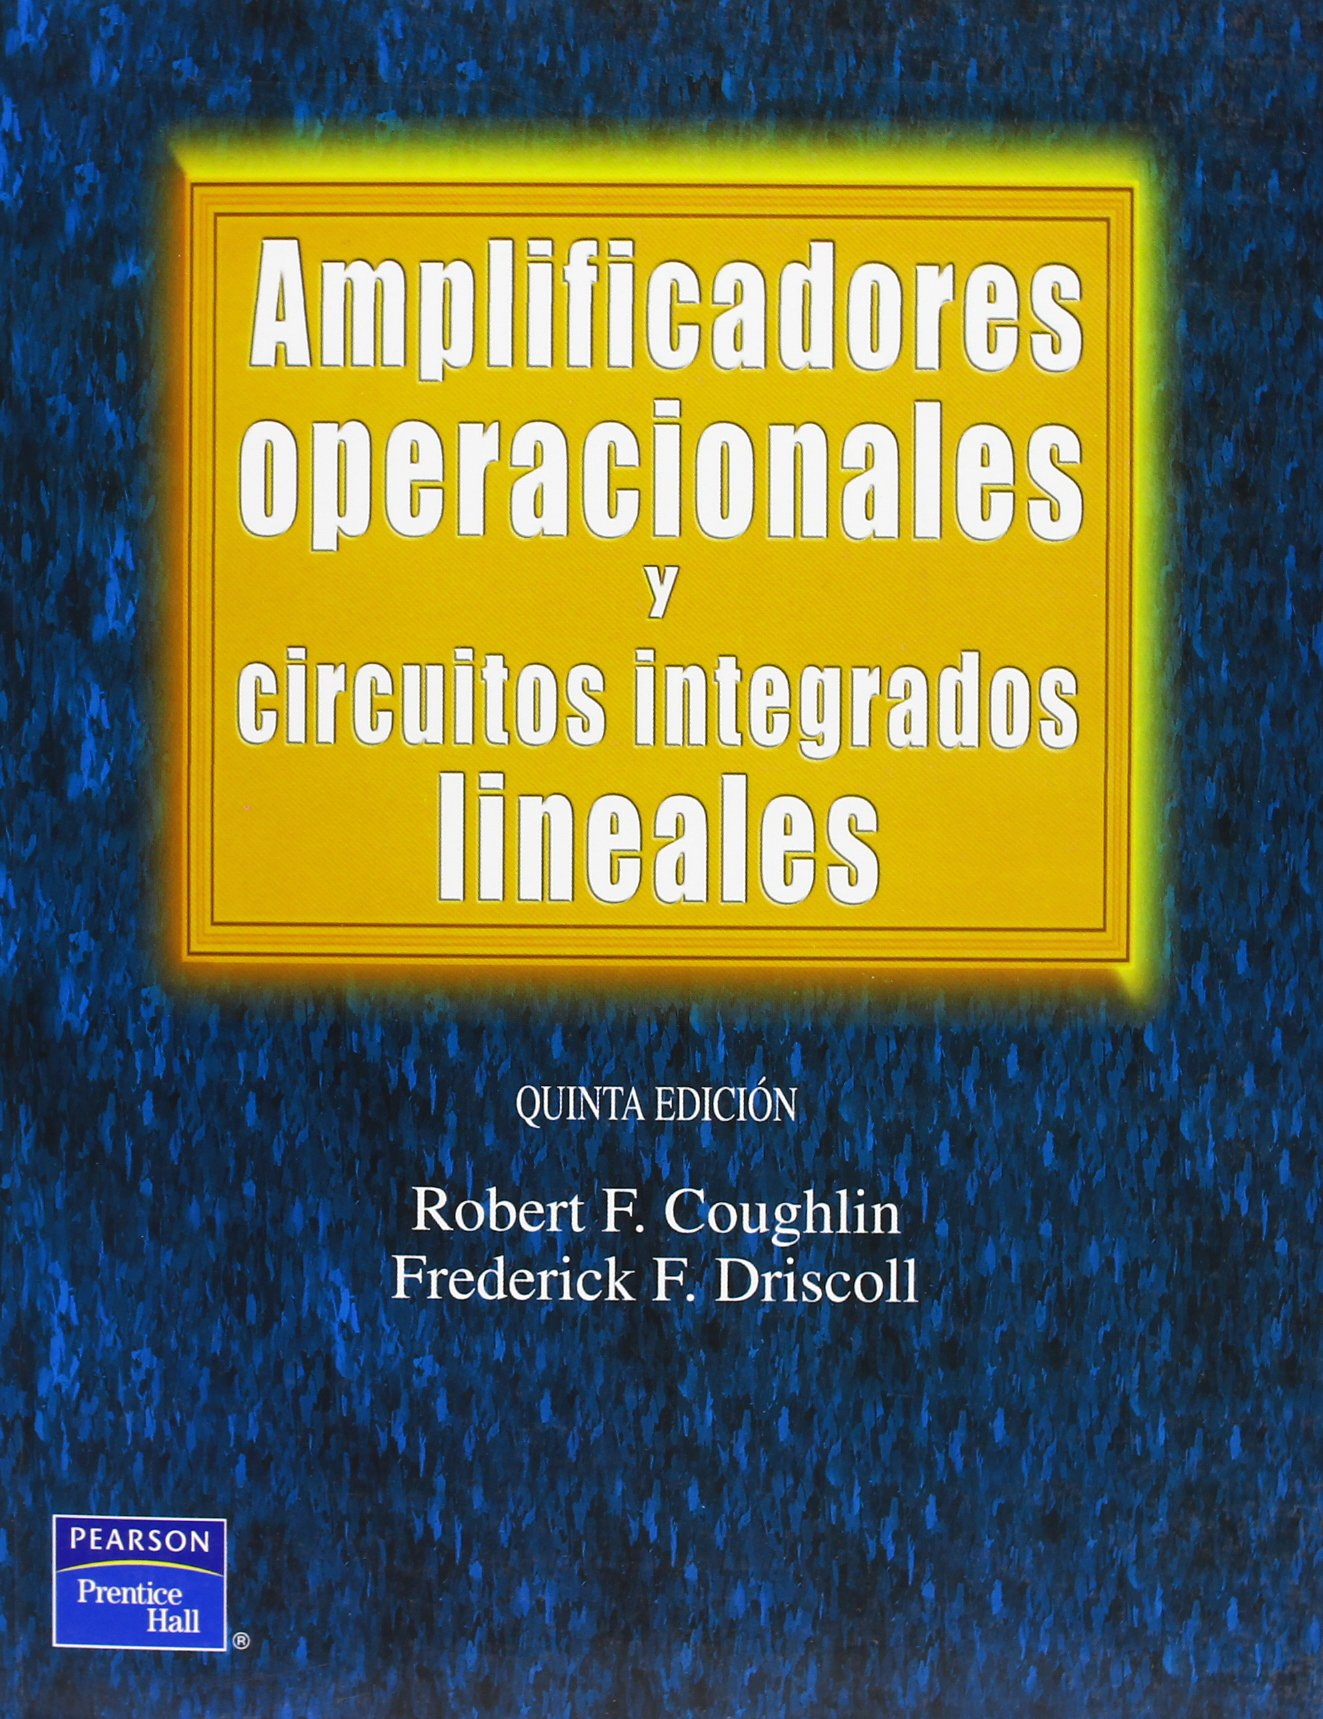 Amplificadores operacionales ycircuitos integrados: Amazon.es: Robert F. Coughlin: Libros